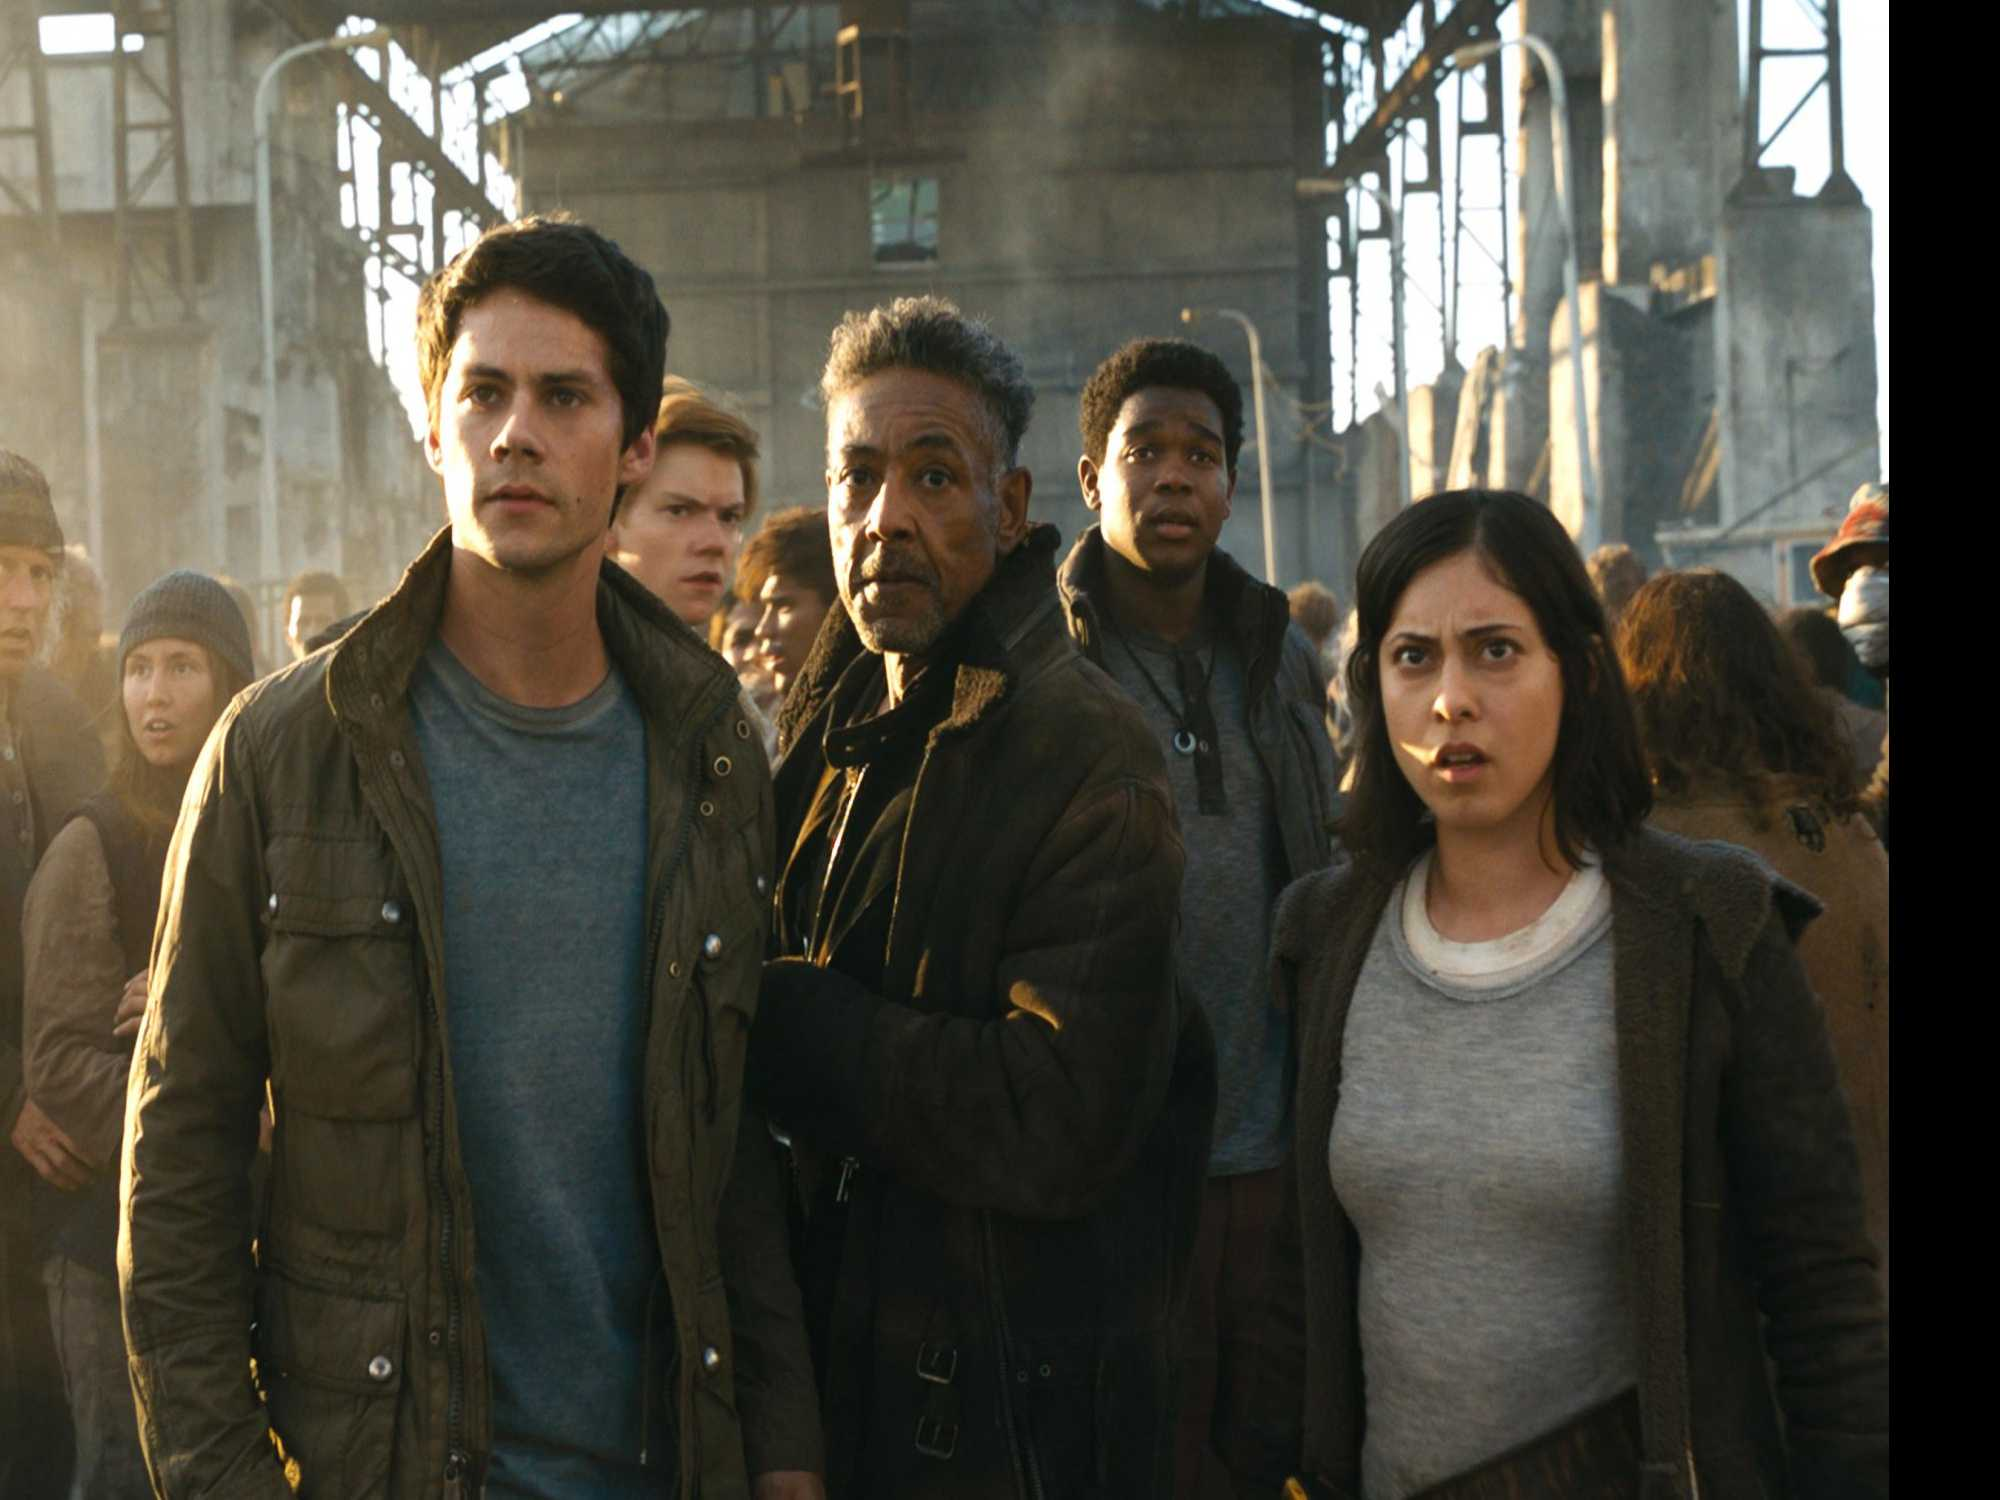 'Maze Runner' Installment Tops Charts, Oscars Pics Get Boost